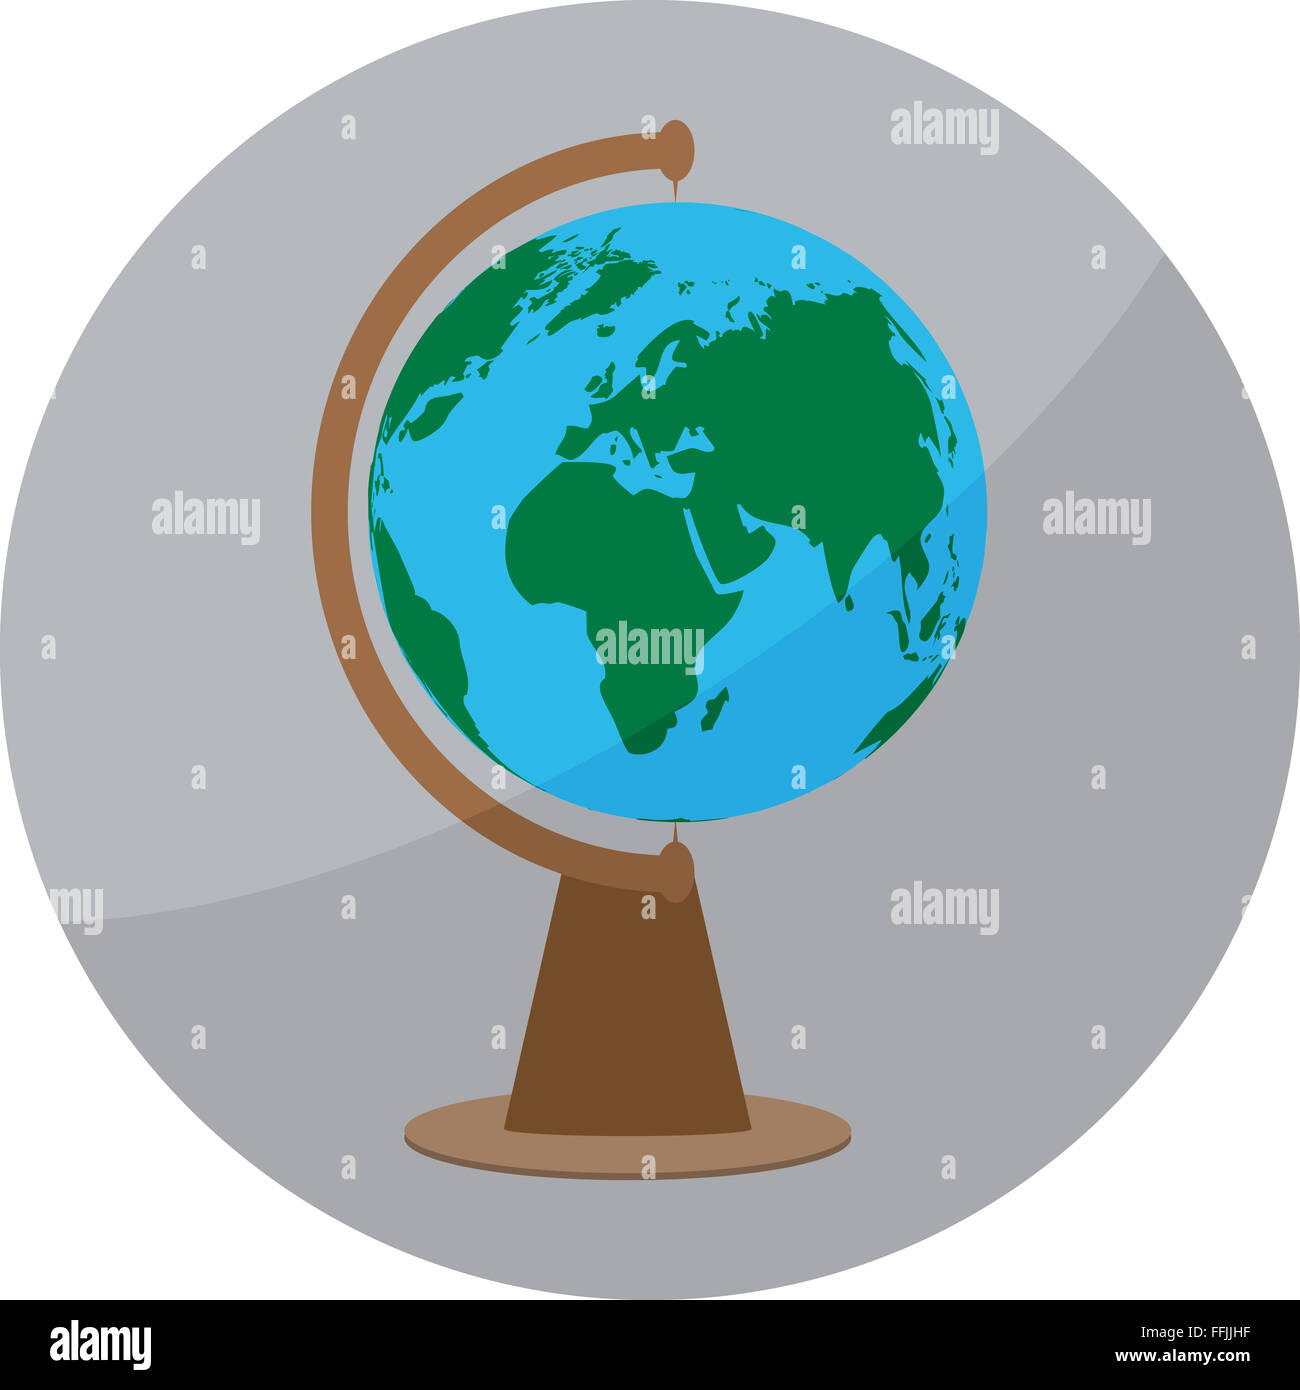 Icon globe sign globe badge app sphere ball world earth map globe badge app sphere ball world earth map geography travel vector abstract flat design illustration gumiabroncs